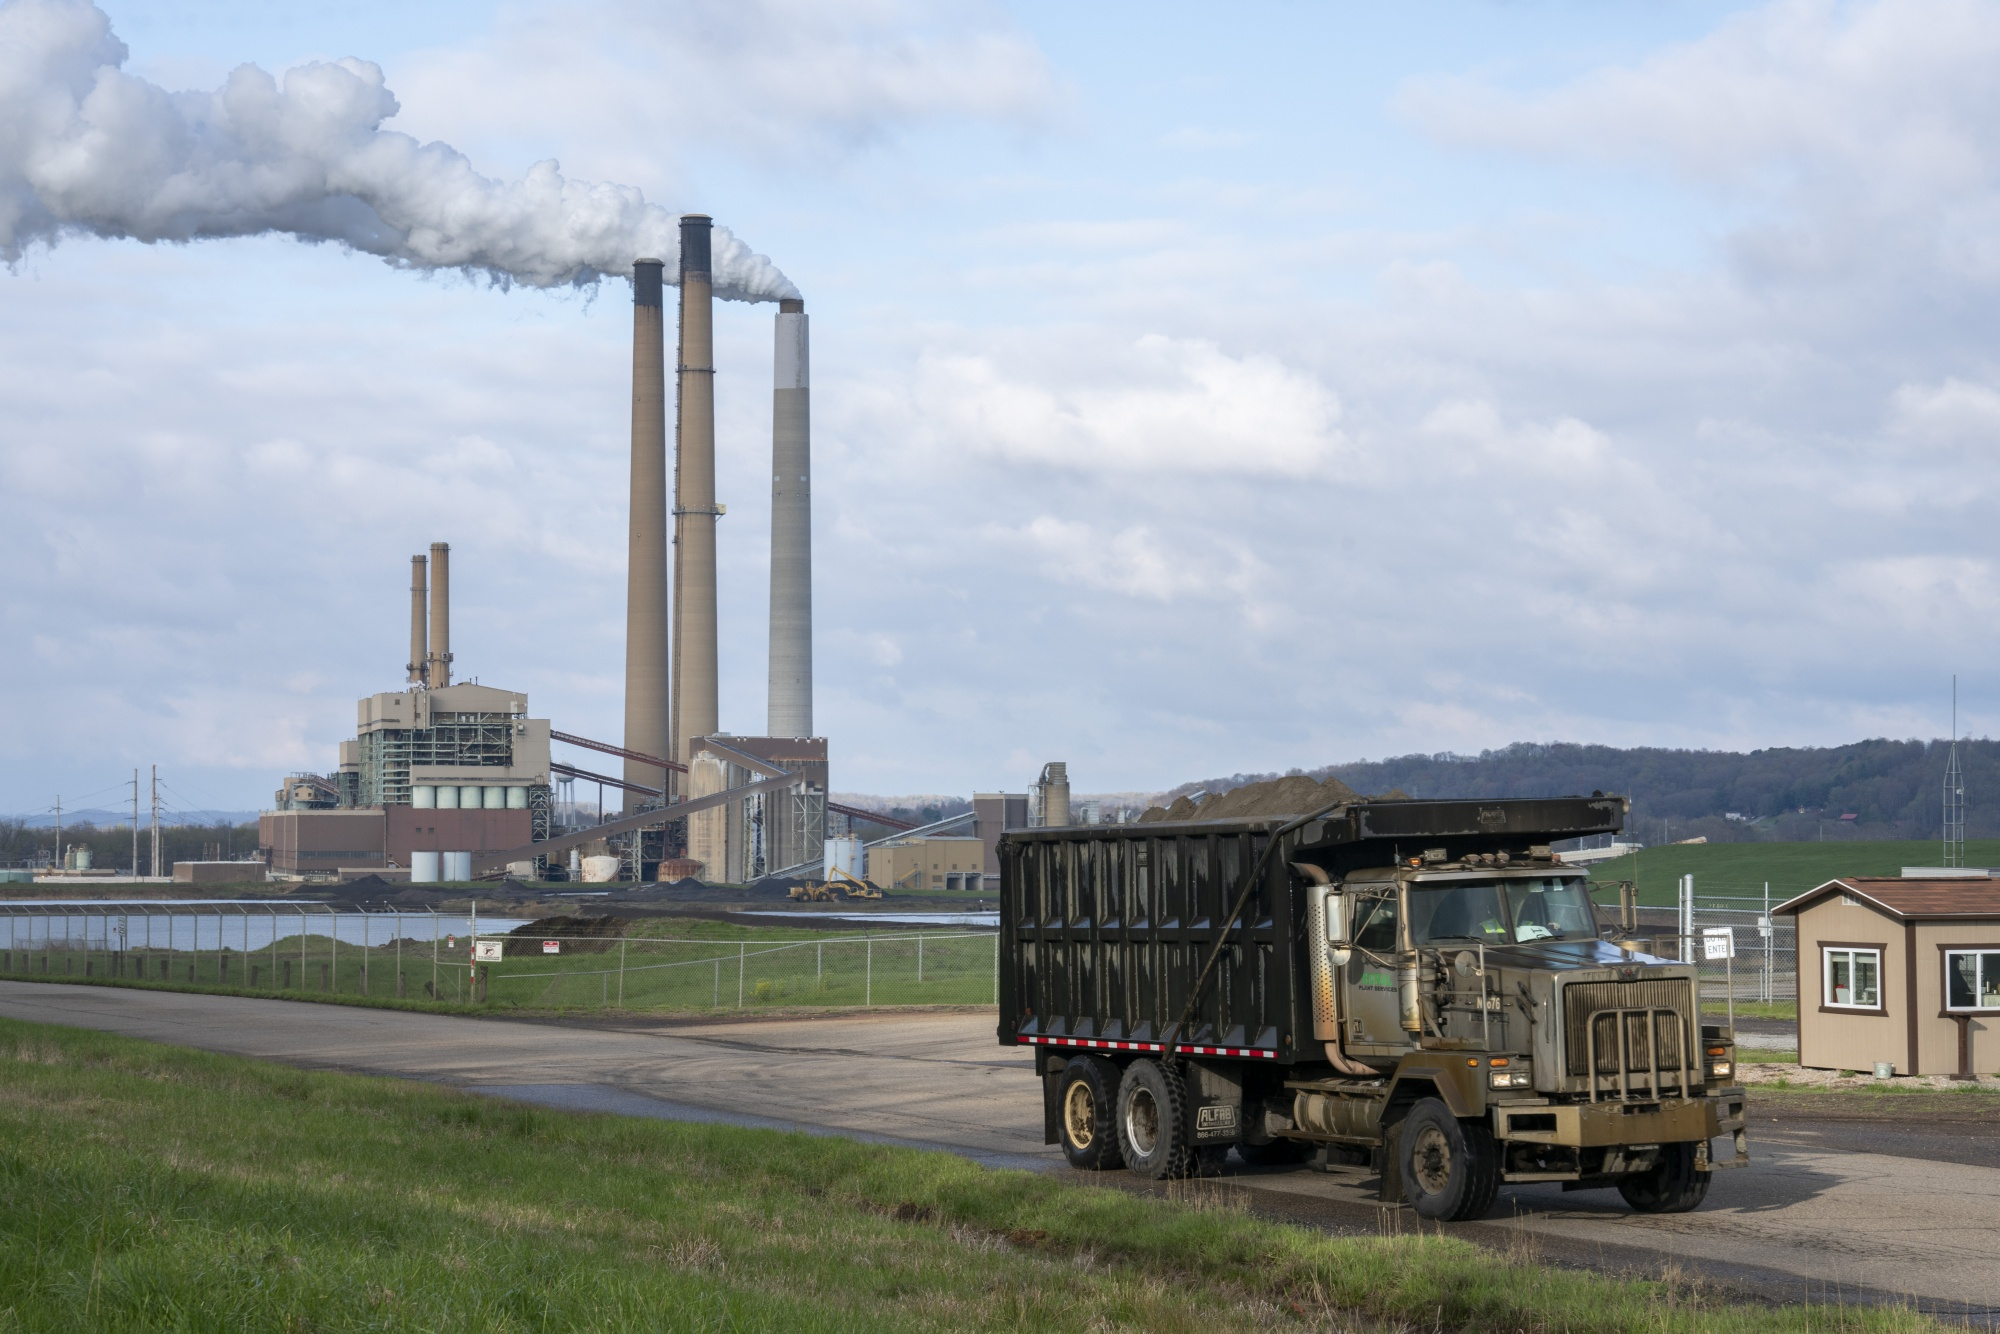 A coal-fired power plant in Conesville, U.S.